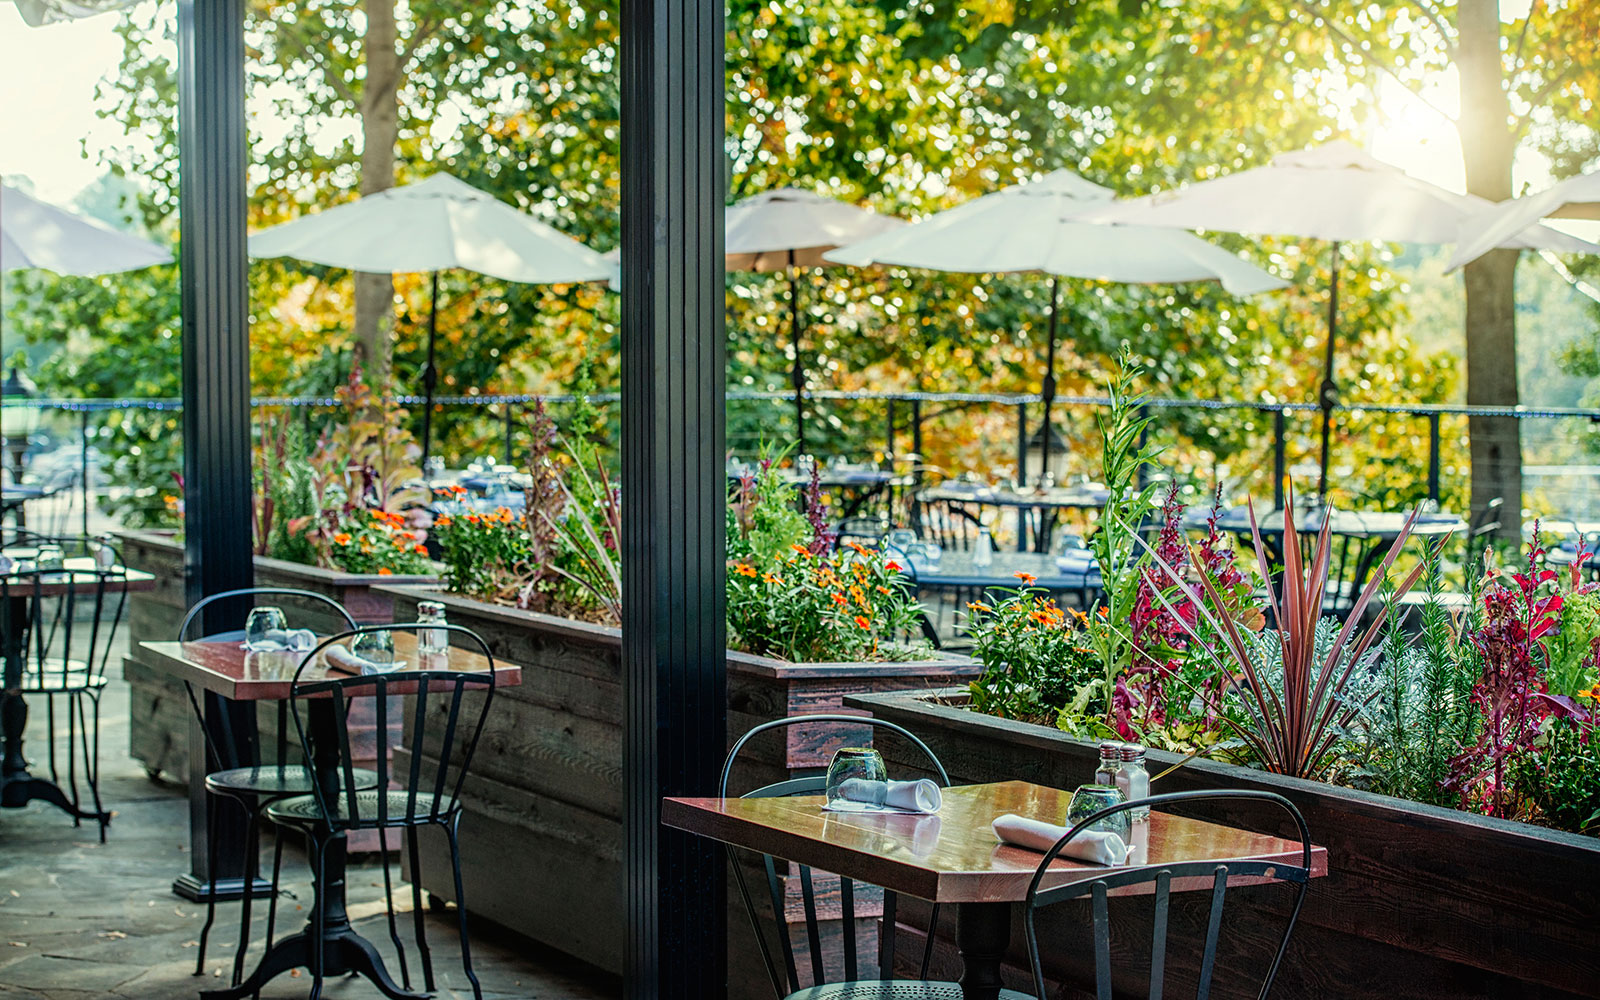 Ten of America's Best Outdoor Dining Spots, According to OpenTable: Passerelle Bistro in Greenville, South Carolina